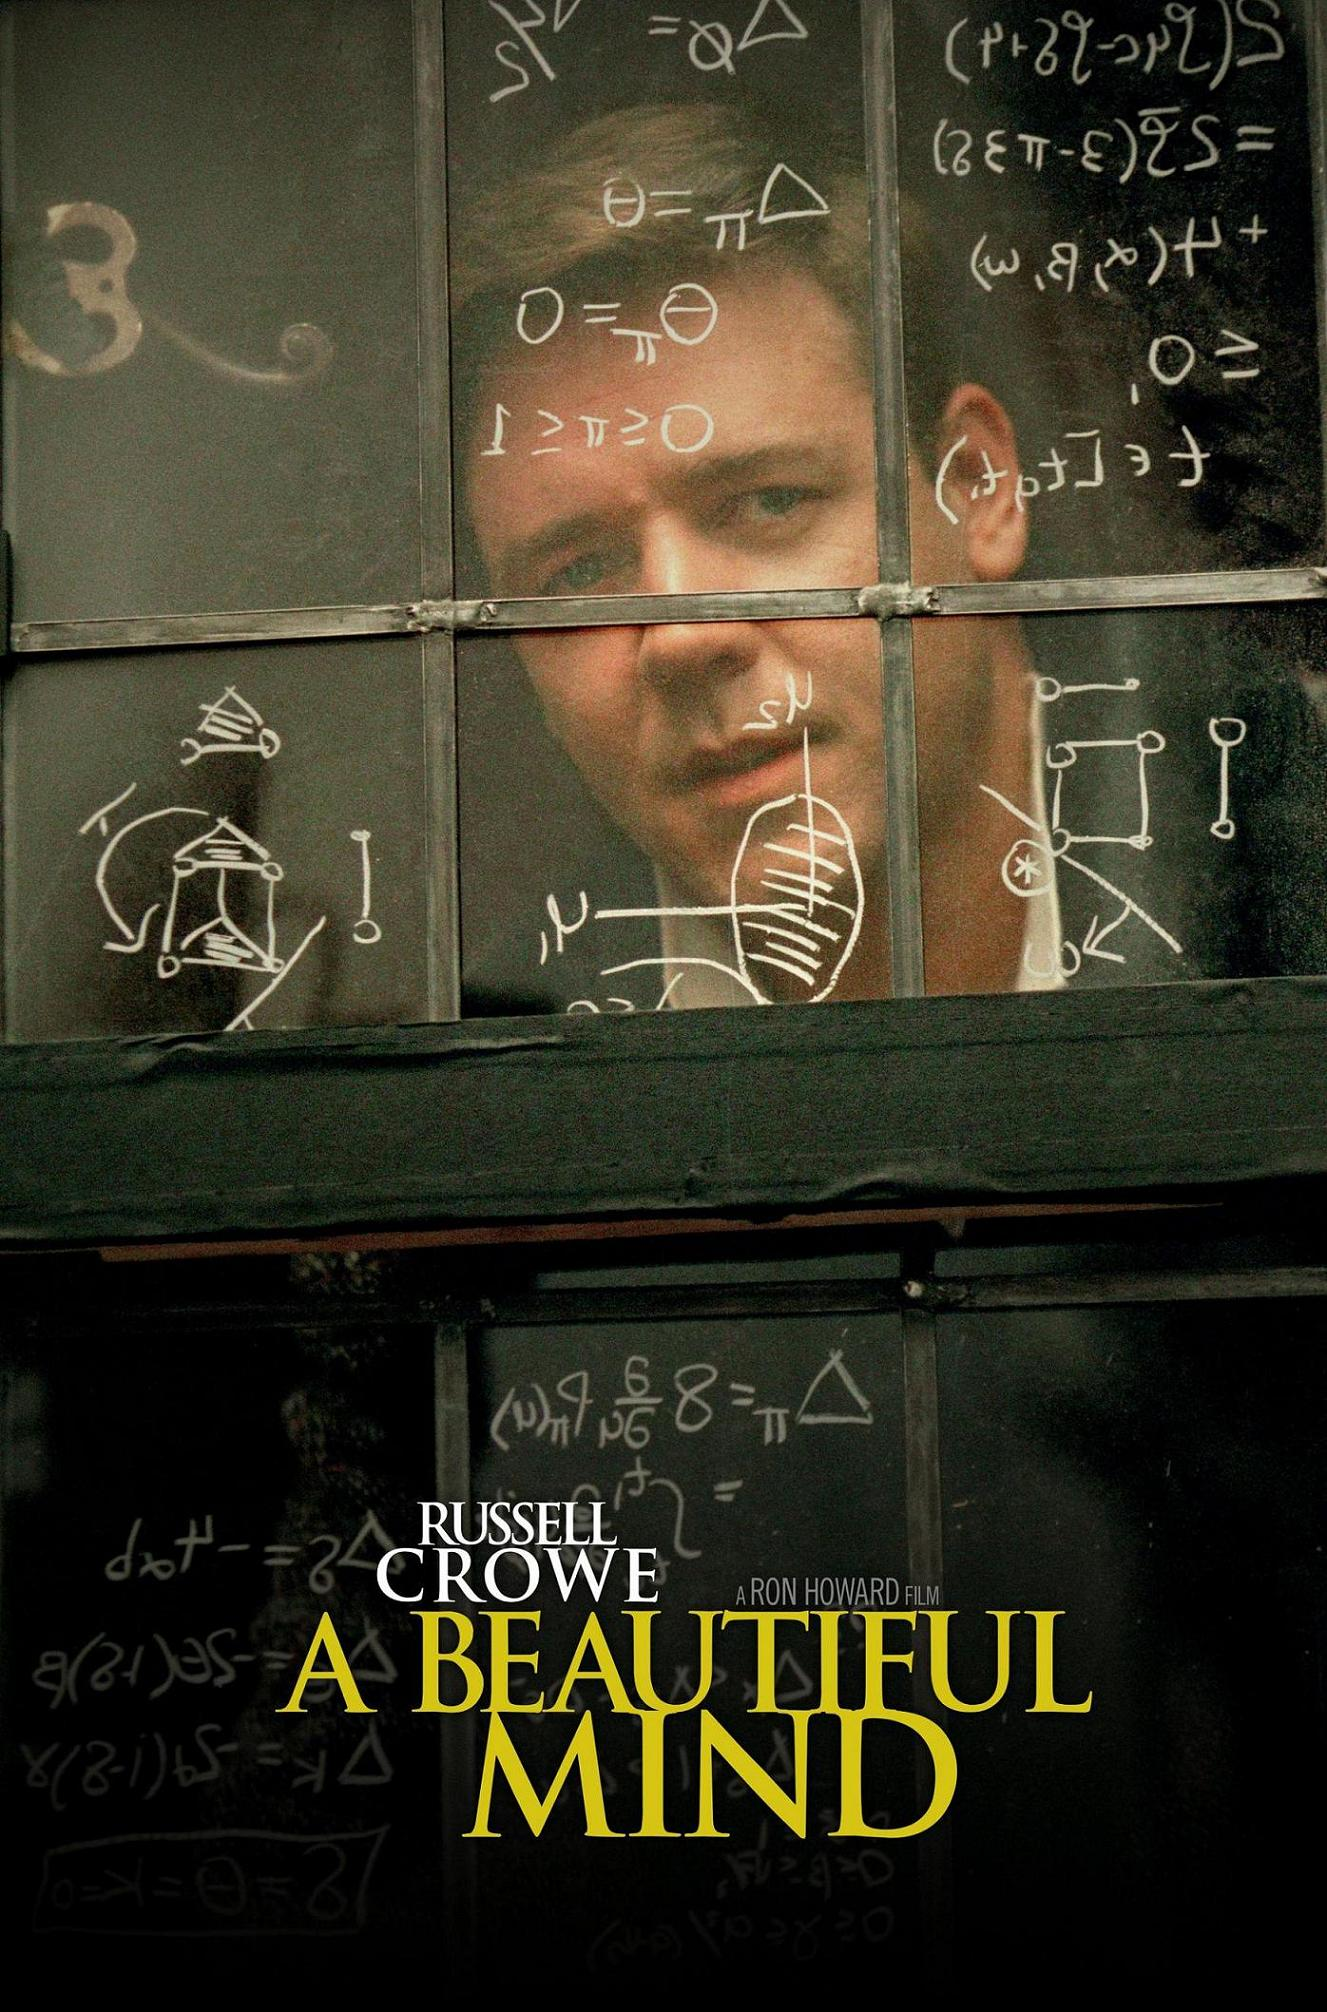 A Beautiful Mind promotional image